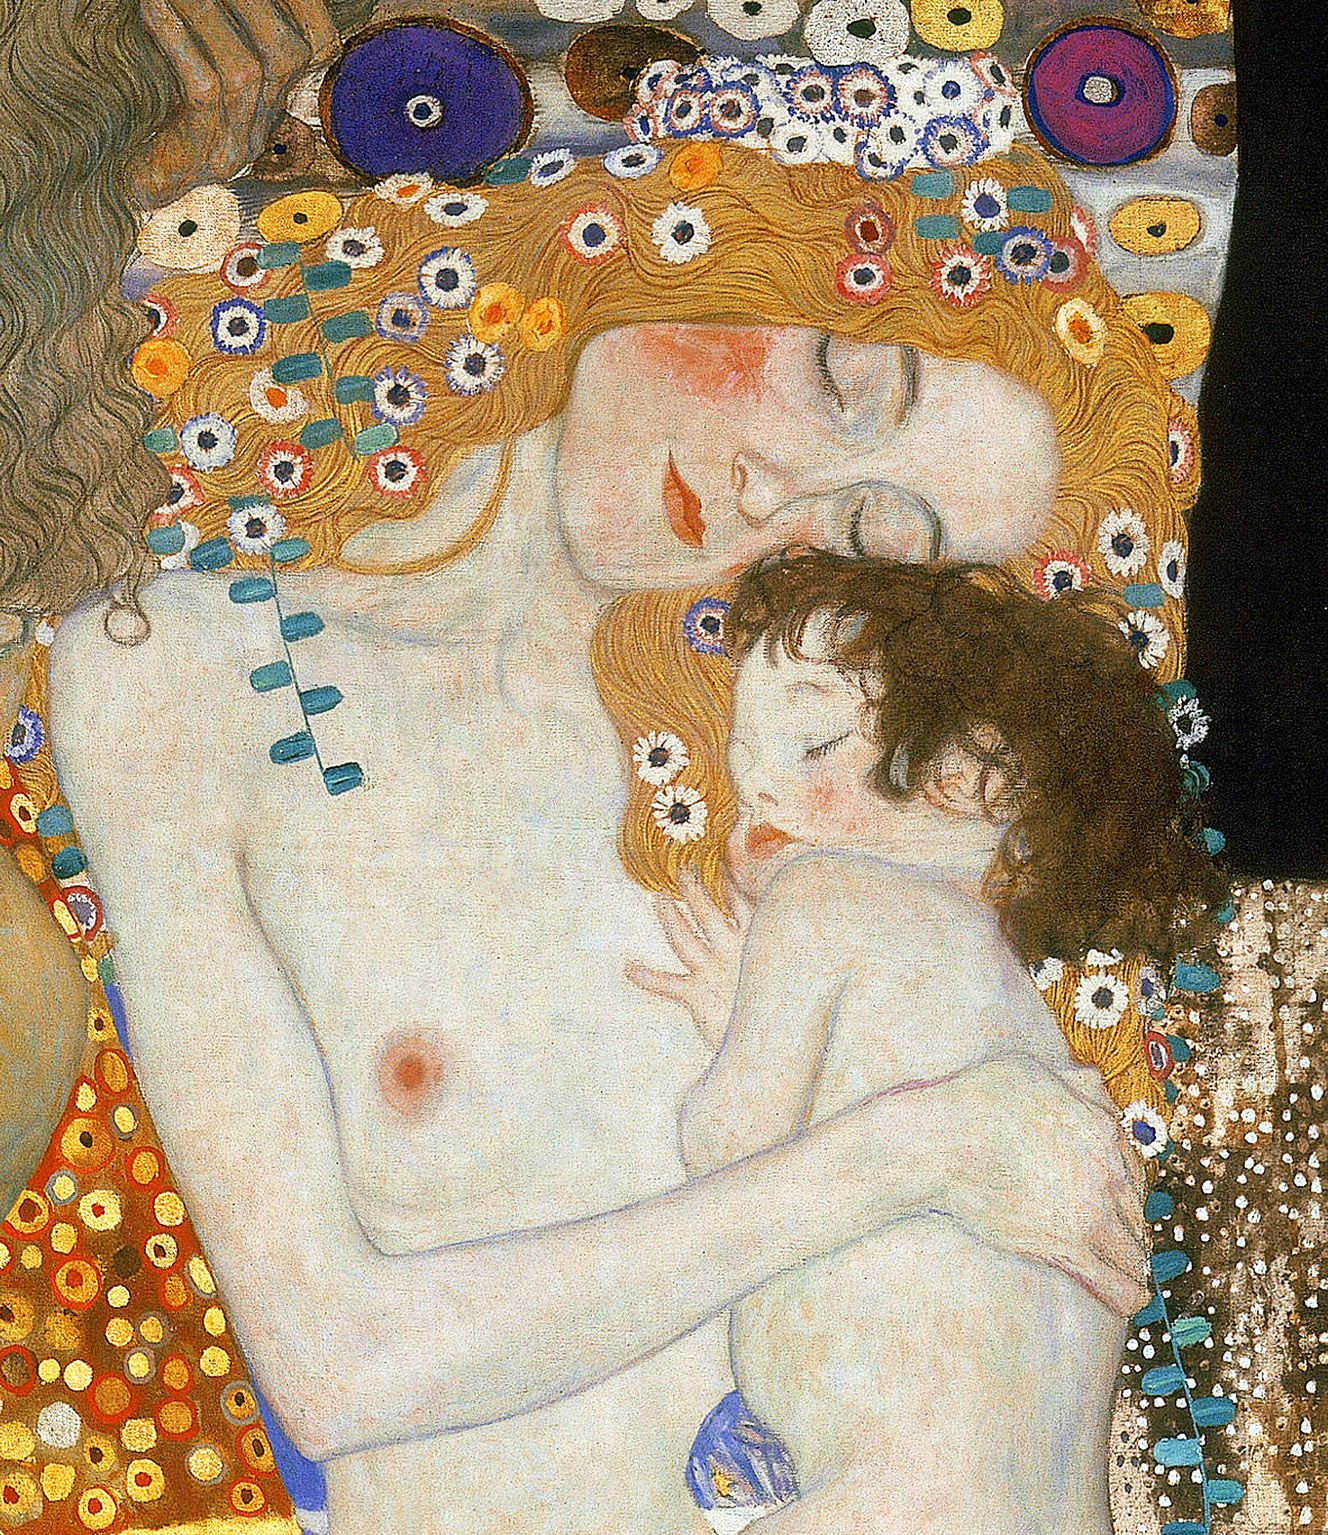 The Three Ages of Woman (detail), by Gustav Klimt, 1905. Galleria Nazionale d'Arte Moderna, Rome, Italy.